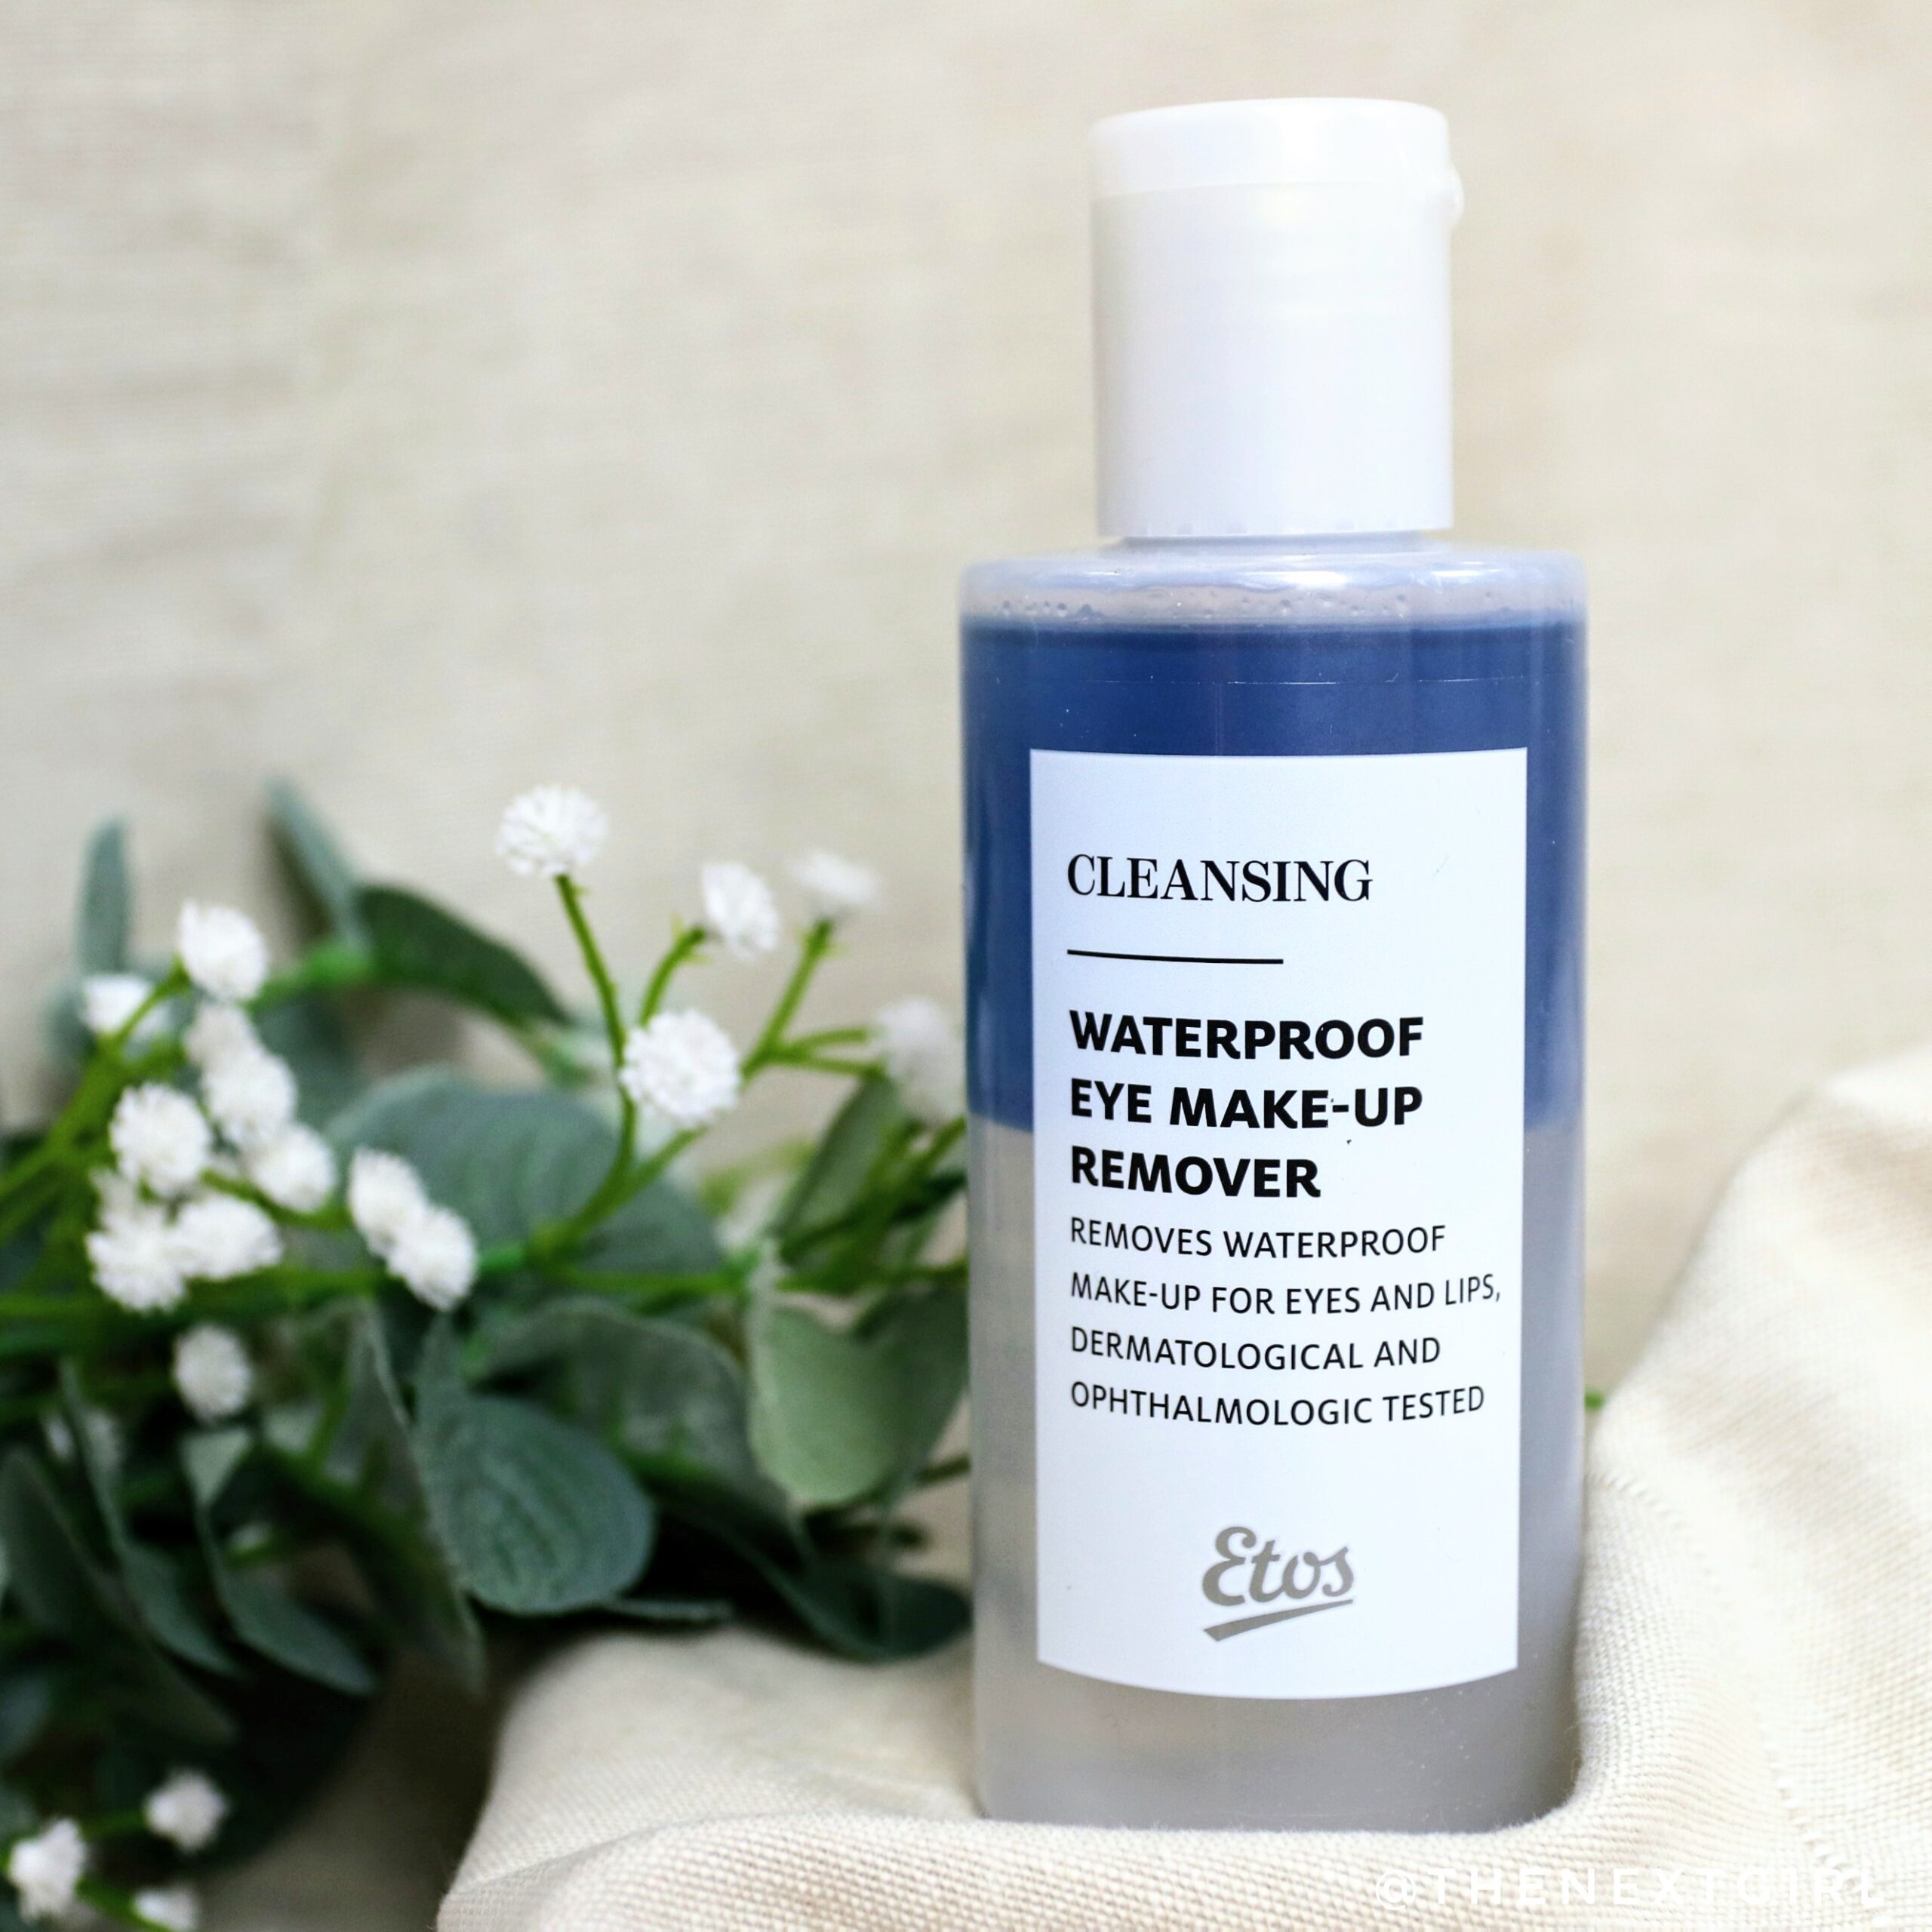 Review: Etos waterproof make-up remover